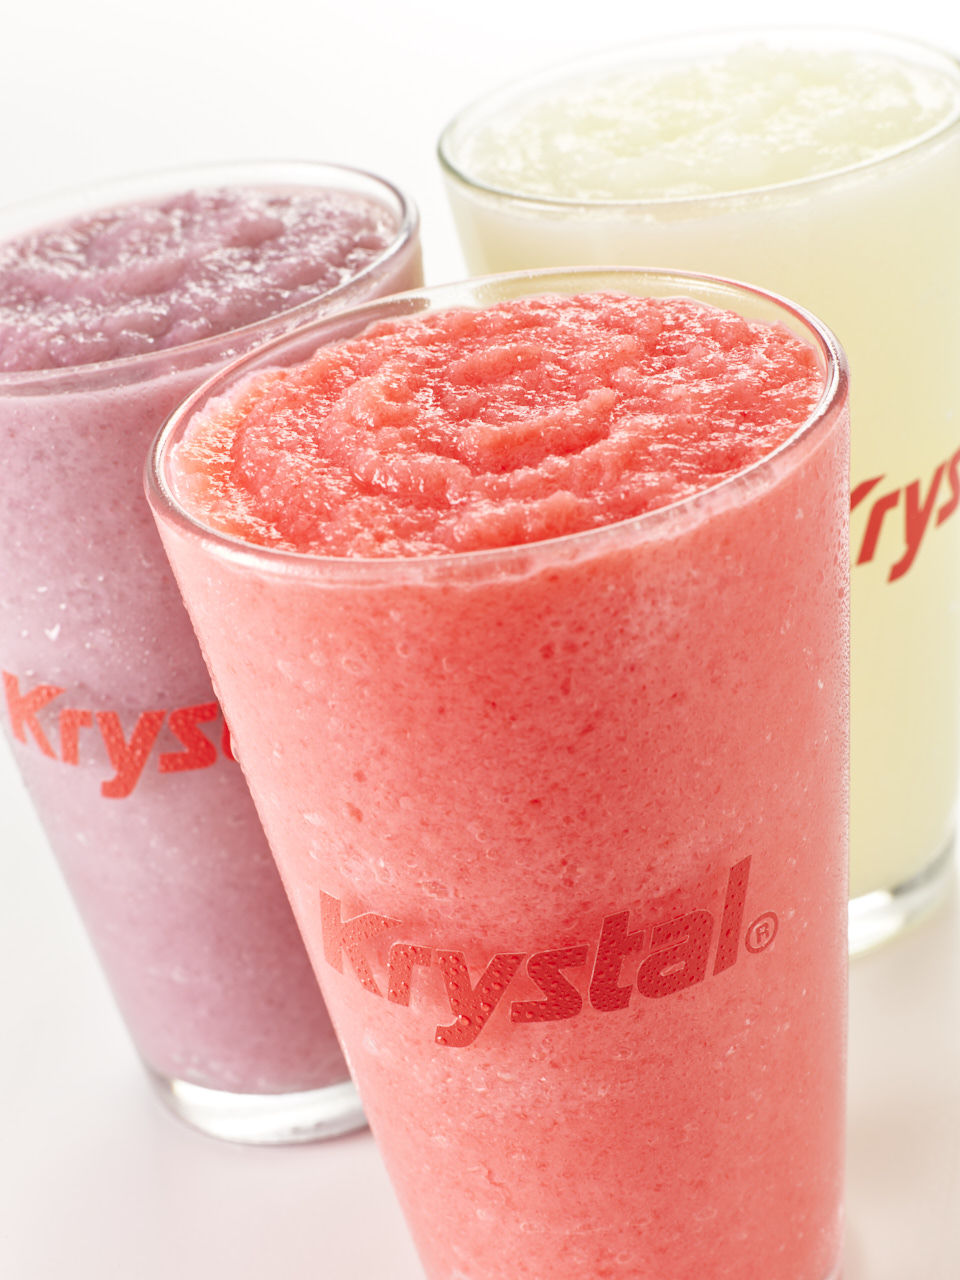 Raspberry, strawberry and citrus slushies in clear Krystal cups